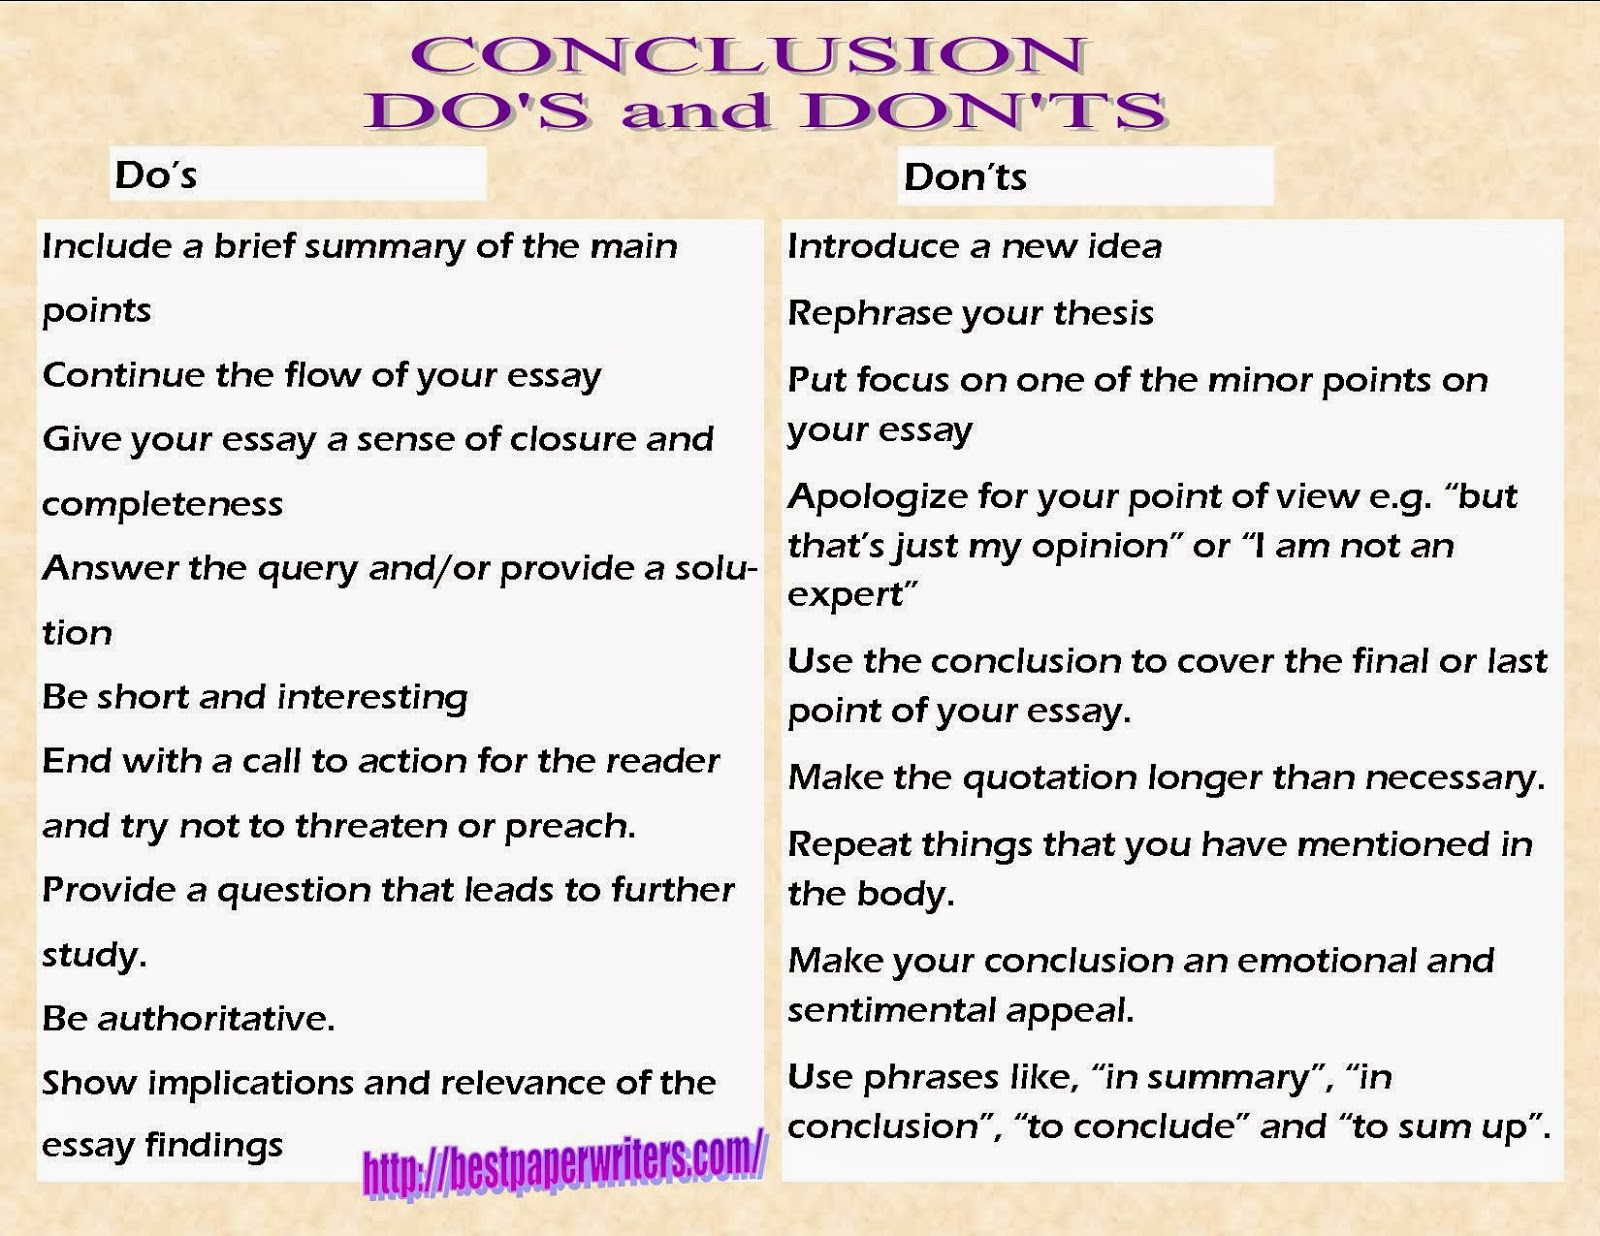 Writing findings and conclusions of law